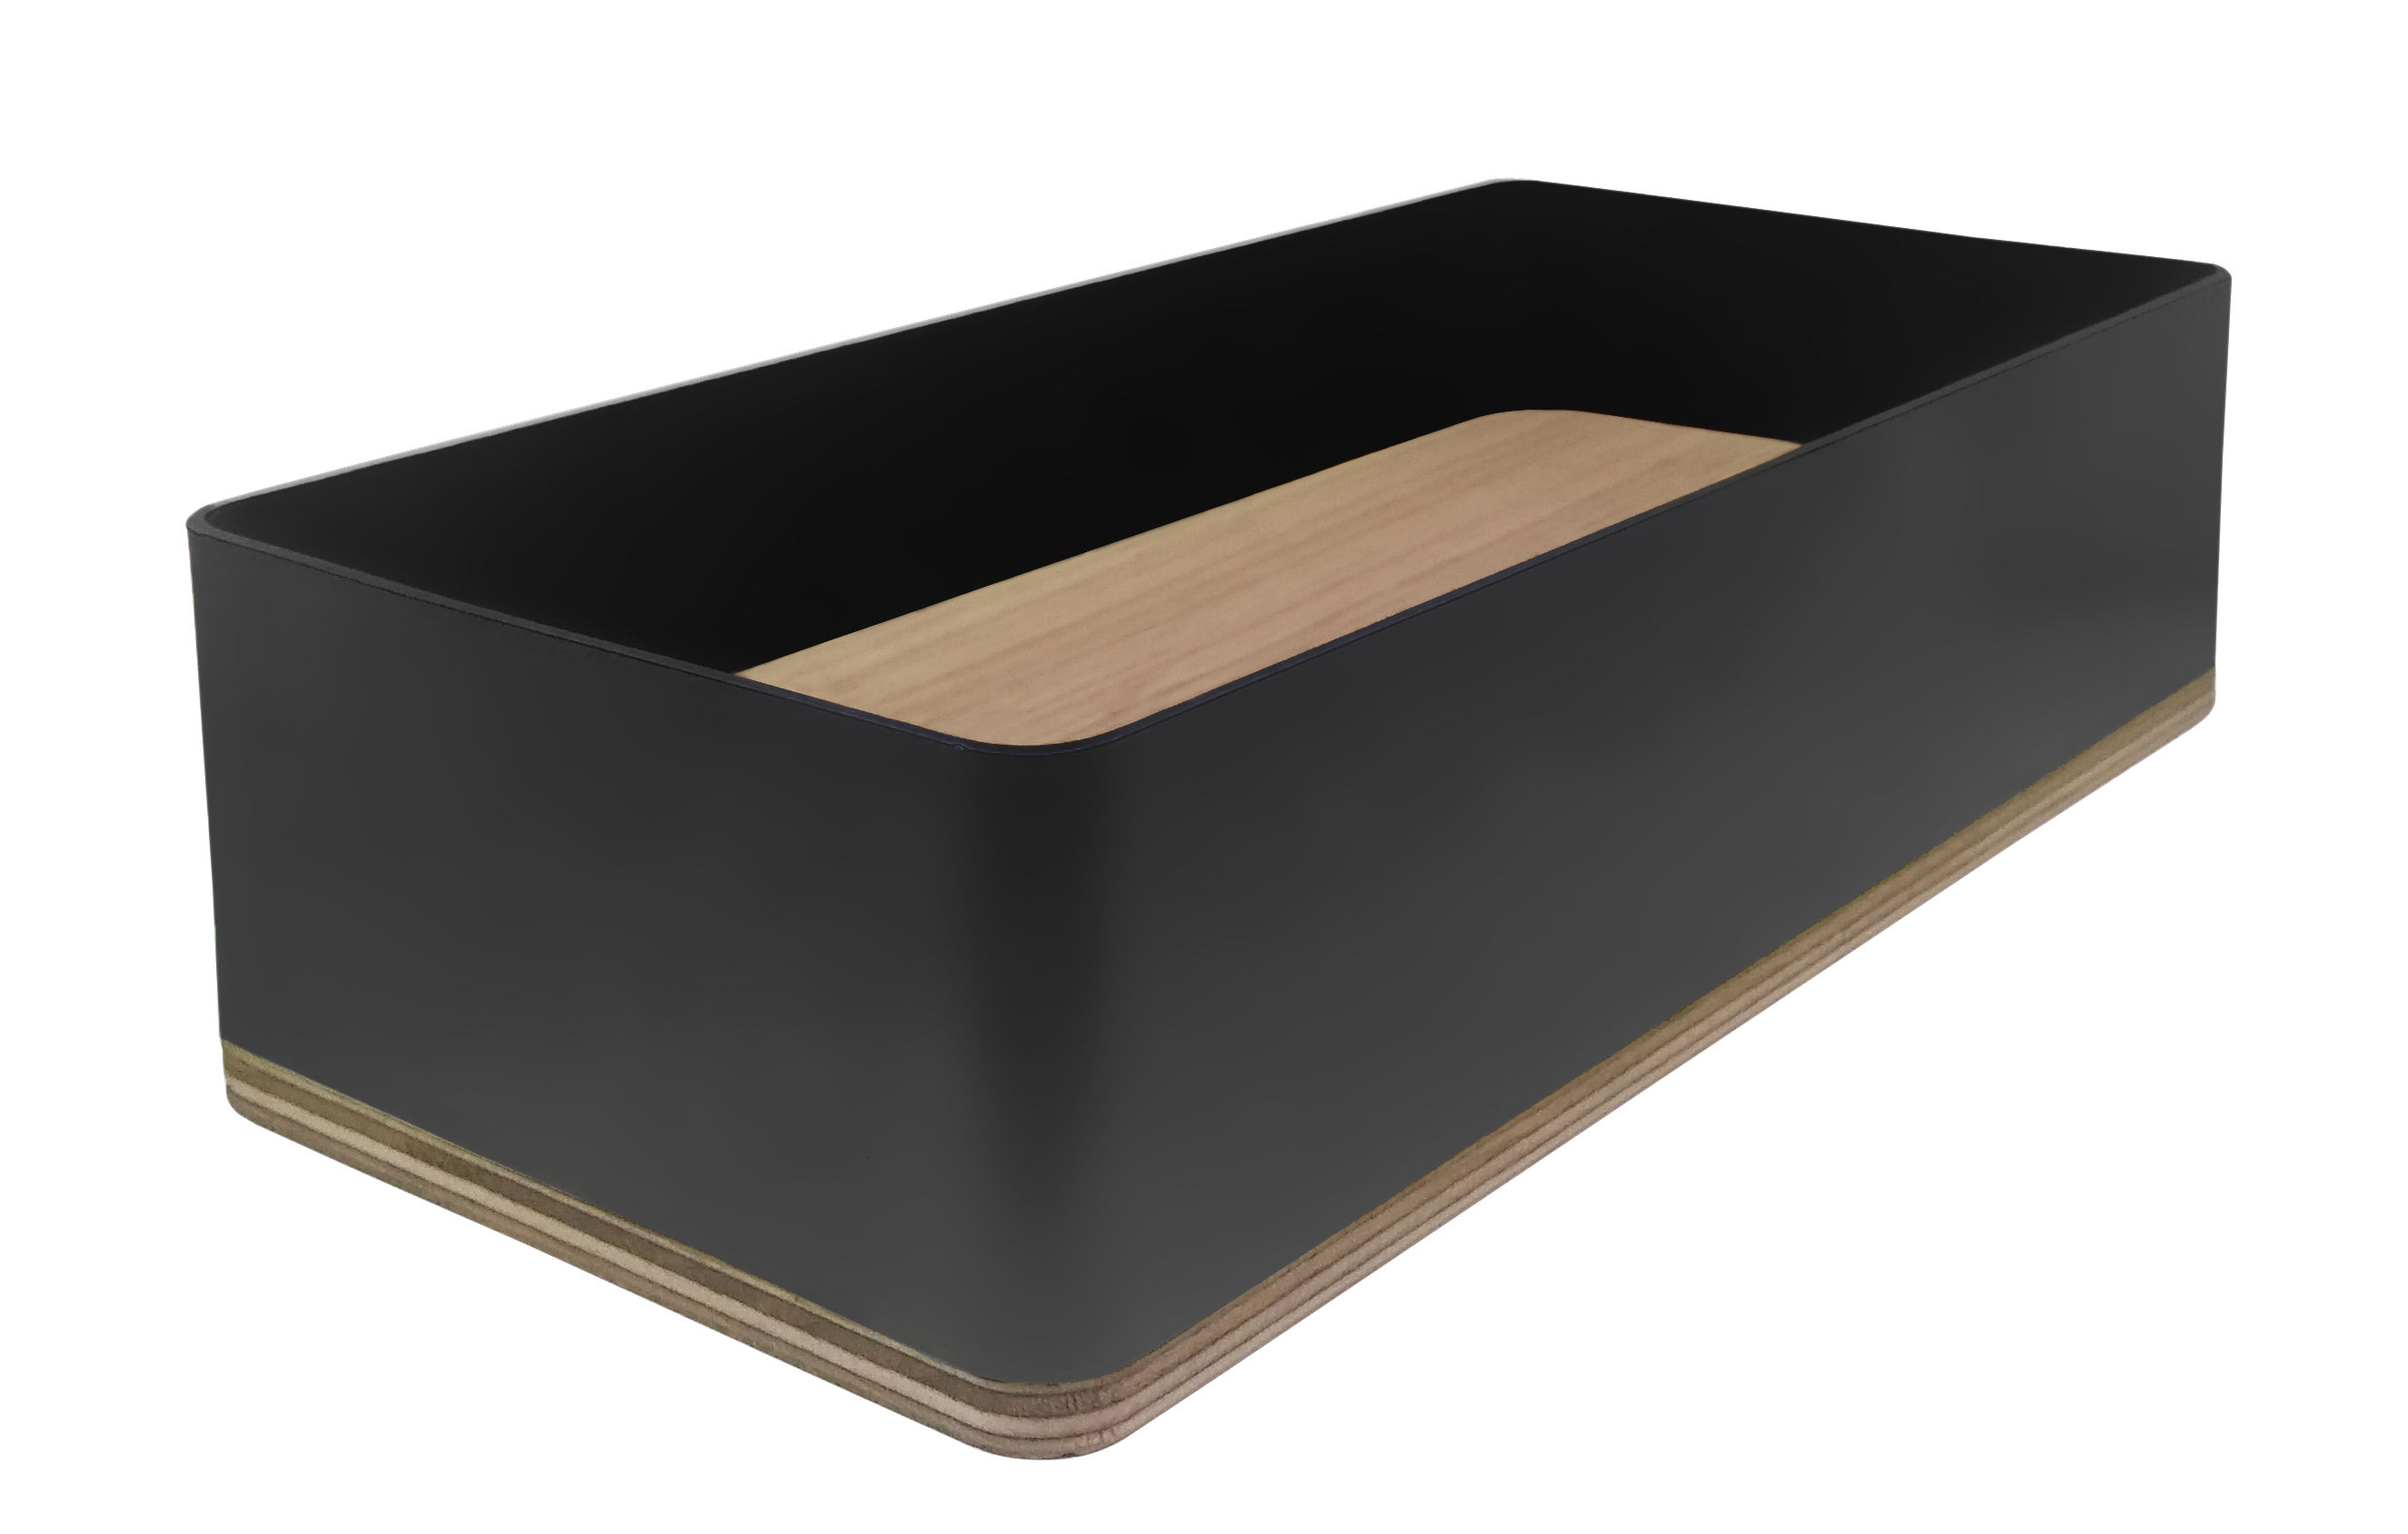 Accessories - Desk & Office Accessories - Portable Atelier Pencil holder - Low - Moleskine by Driade by Driade - Black - Birch plywood, Lacquered steel